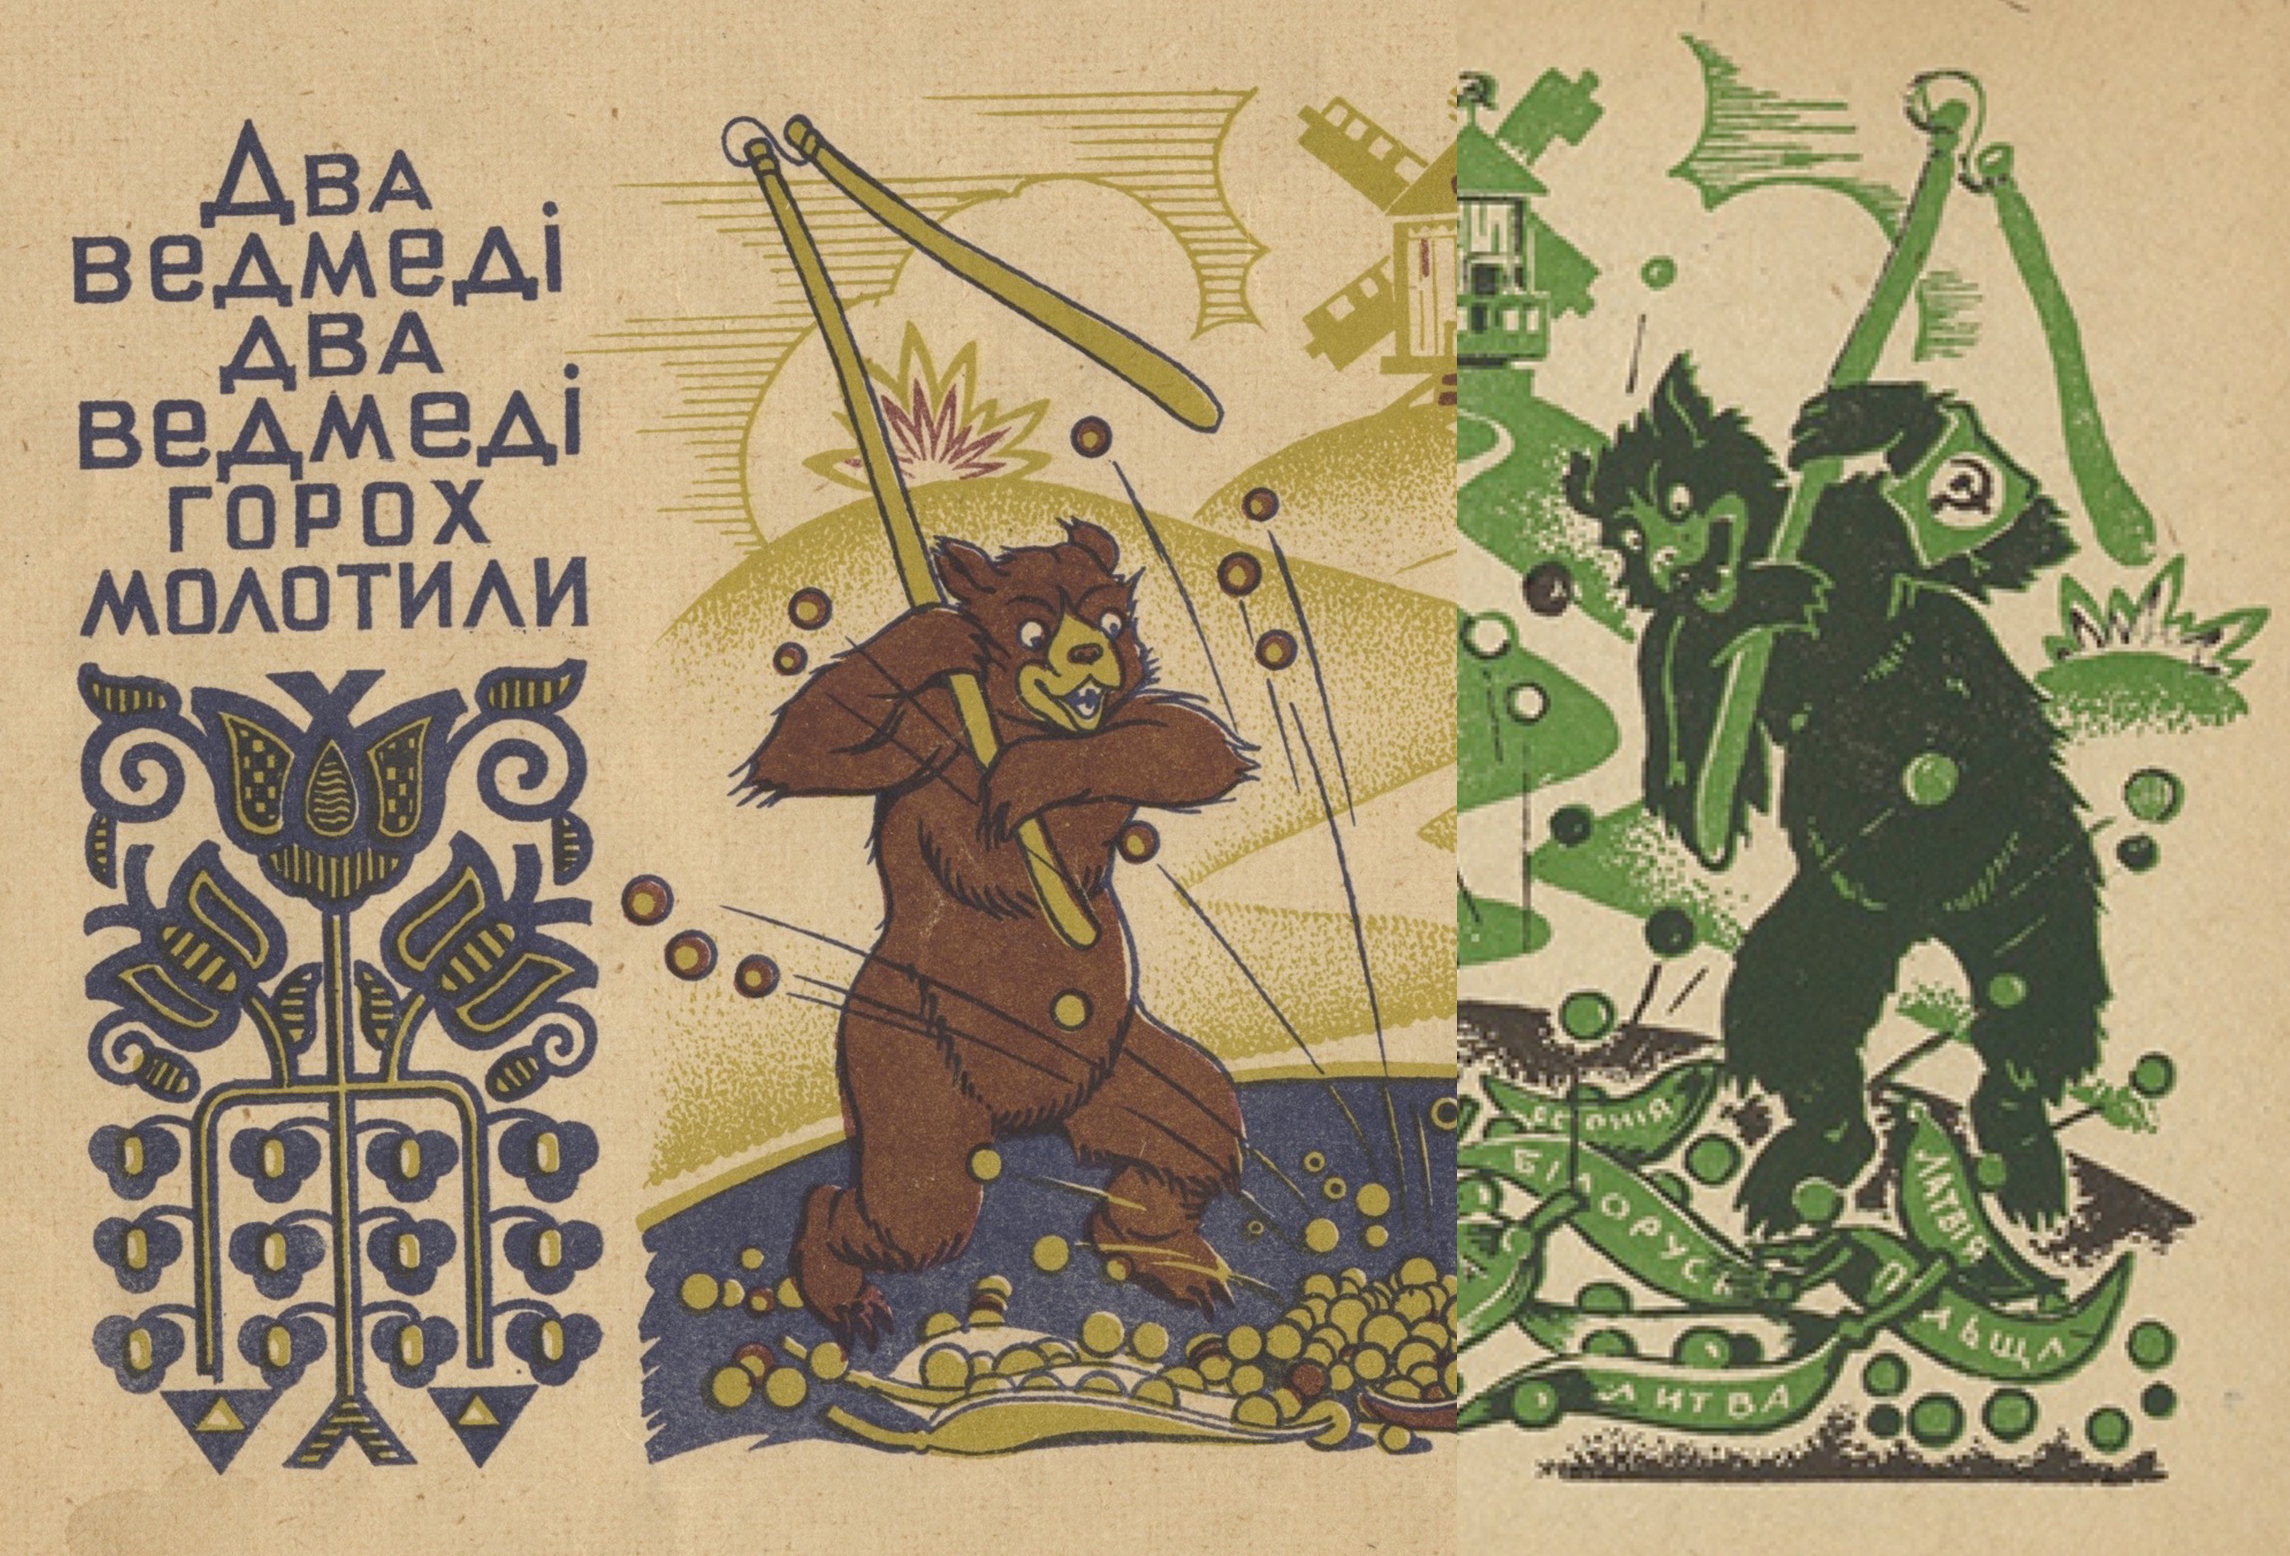 Okhrim Sudomora's Children's Book and Anti-Soviet postcards